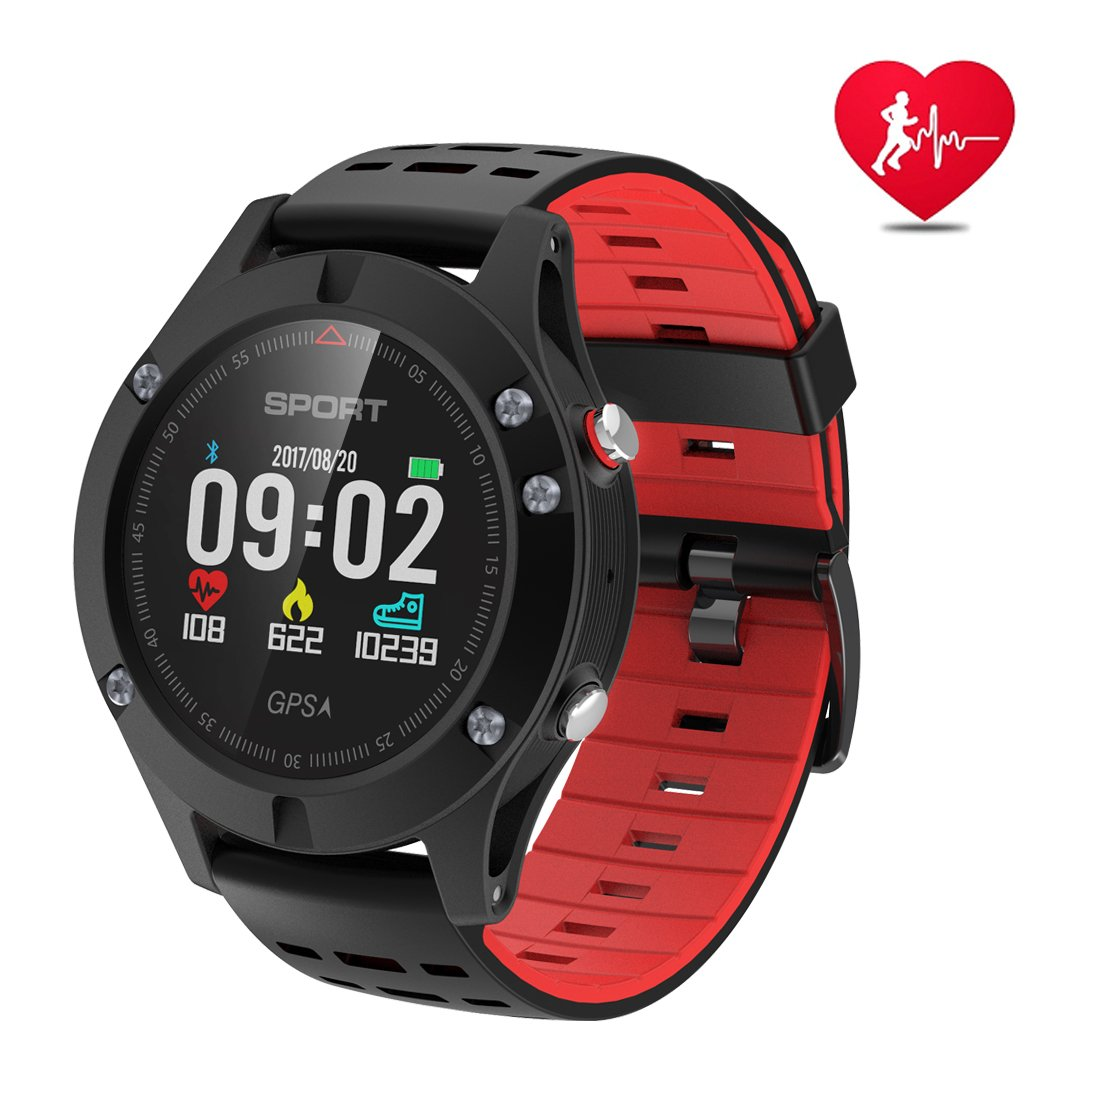 Top 10 Best Hiking Watches Under 100 Dollars in 2020 Reviews 9